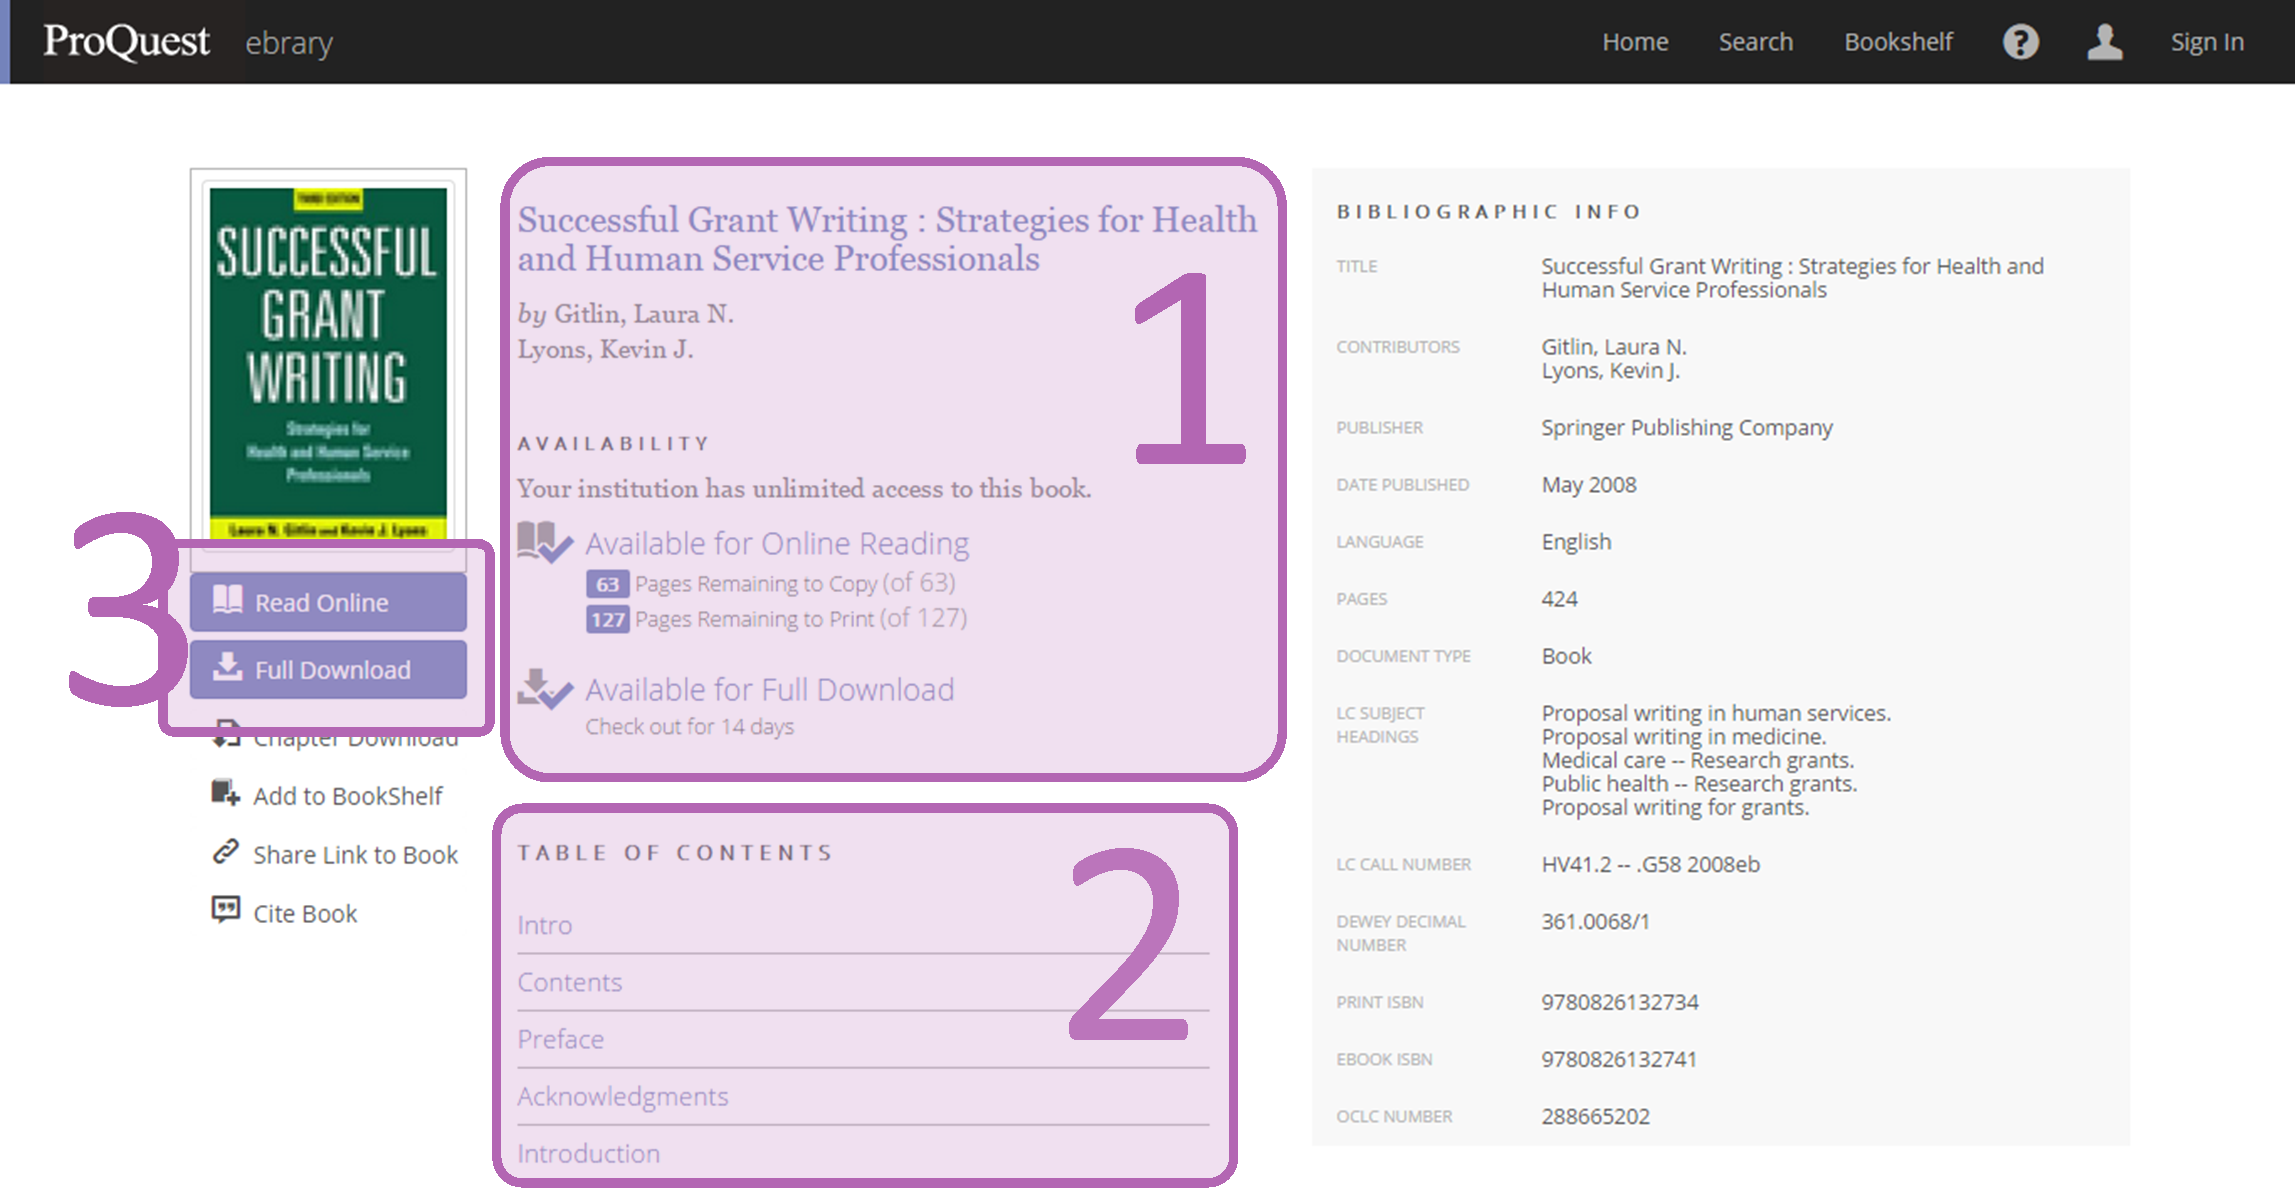 ProQuest Ebook Central Interface